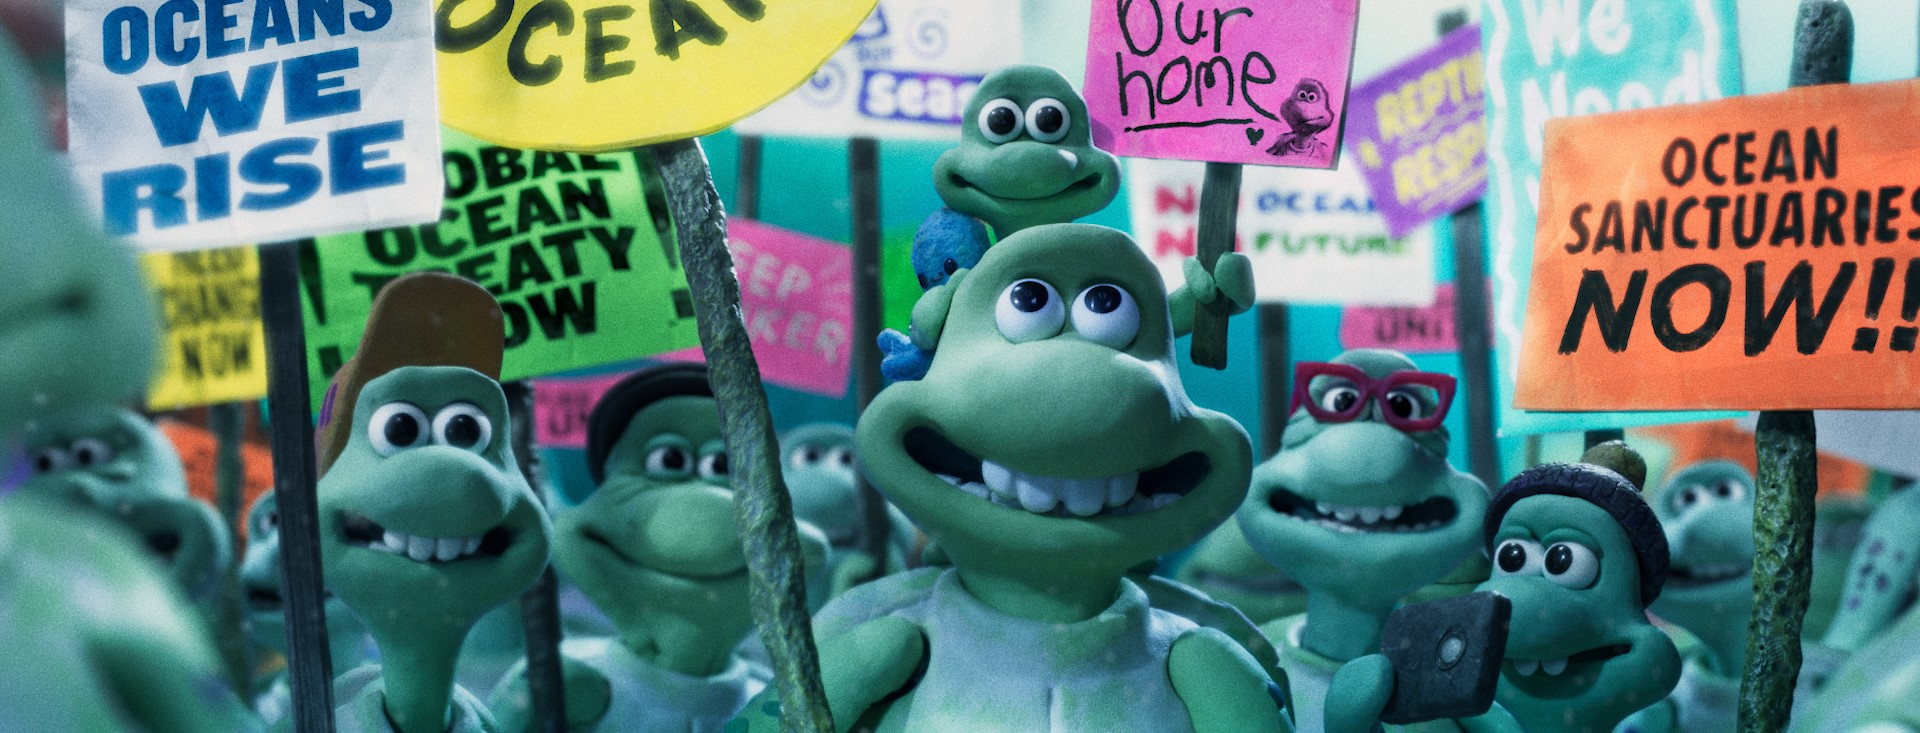 Greenpeace Aardman Turtle Journey